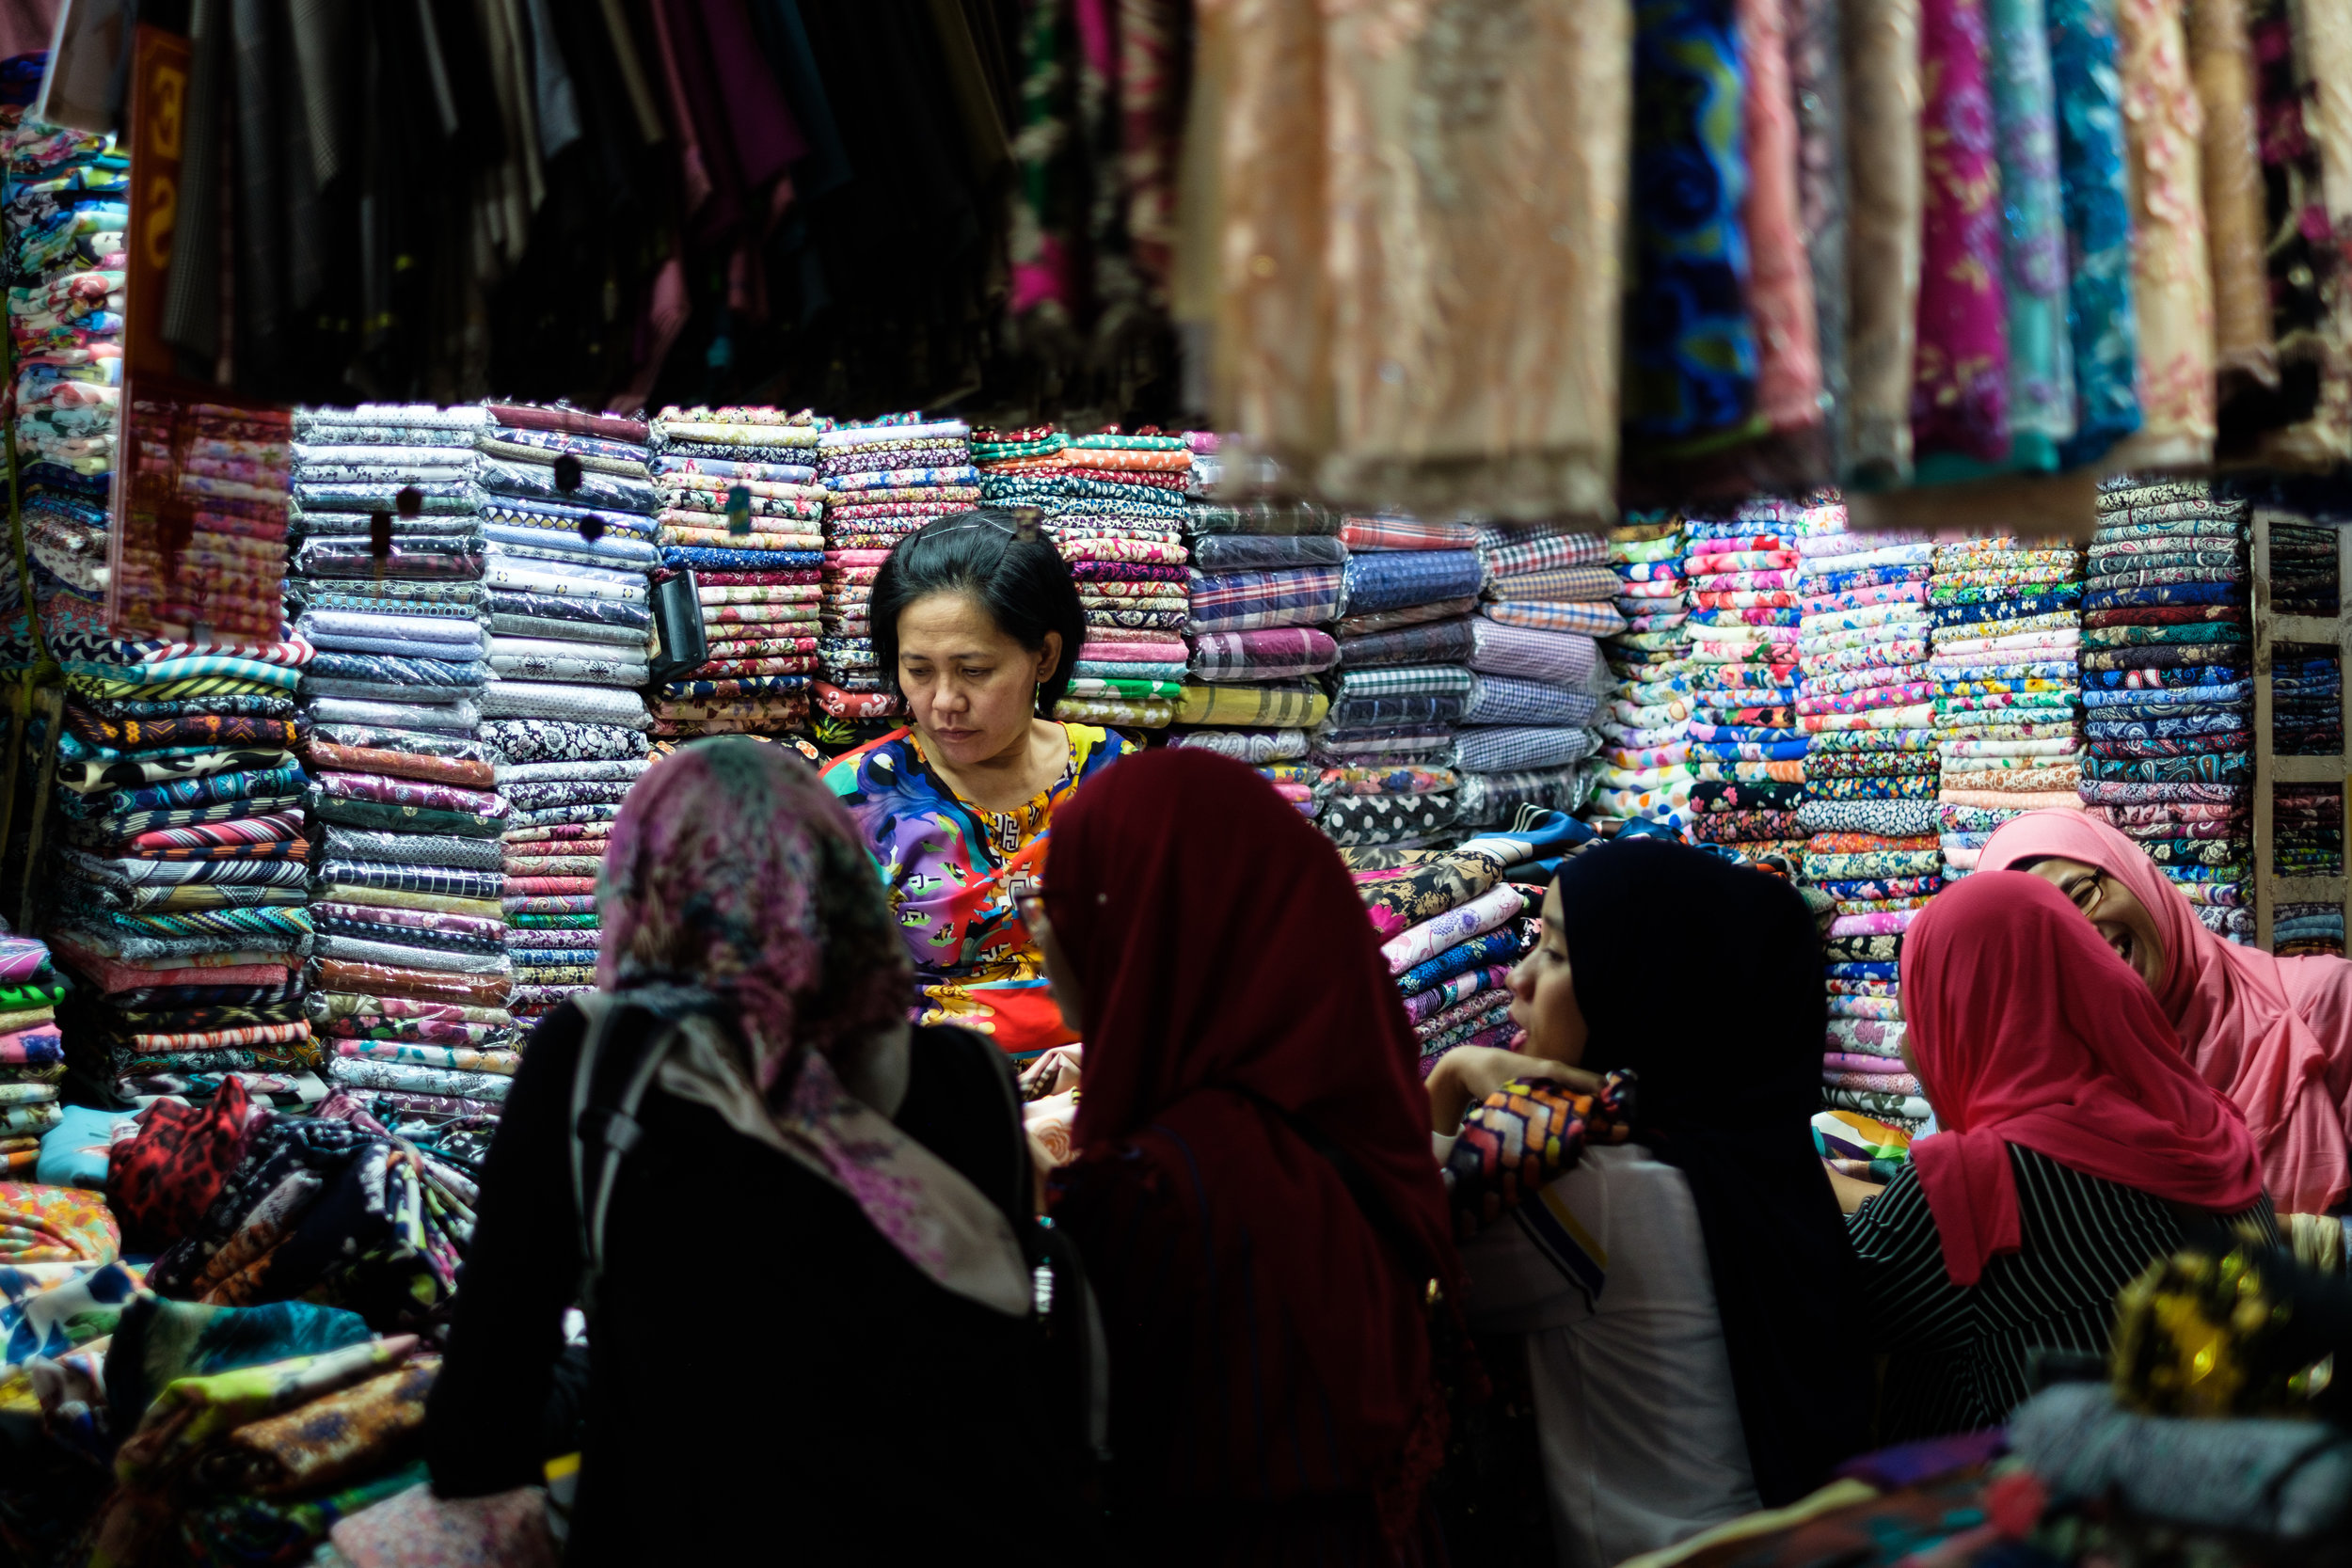 Women shopping for material in Ho Chi Minh Market in Vietnam